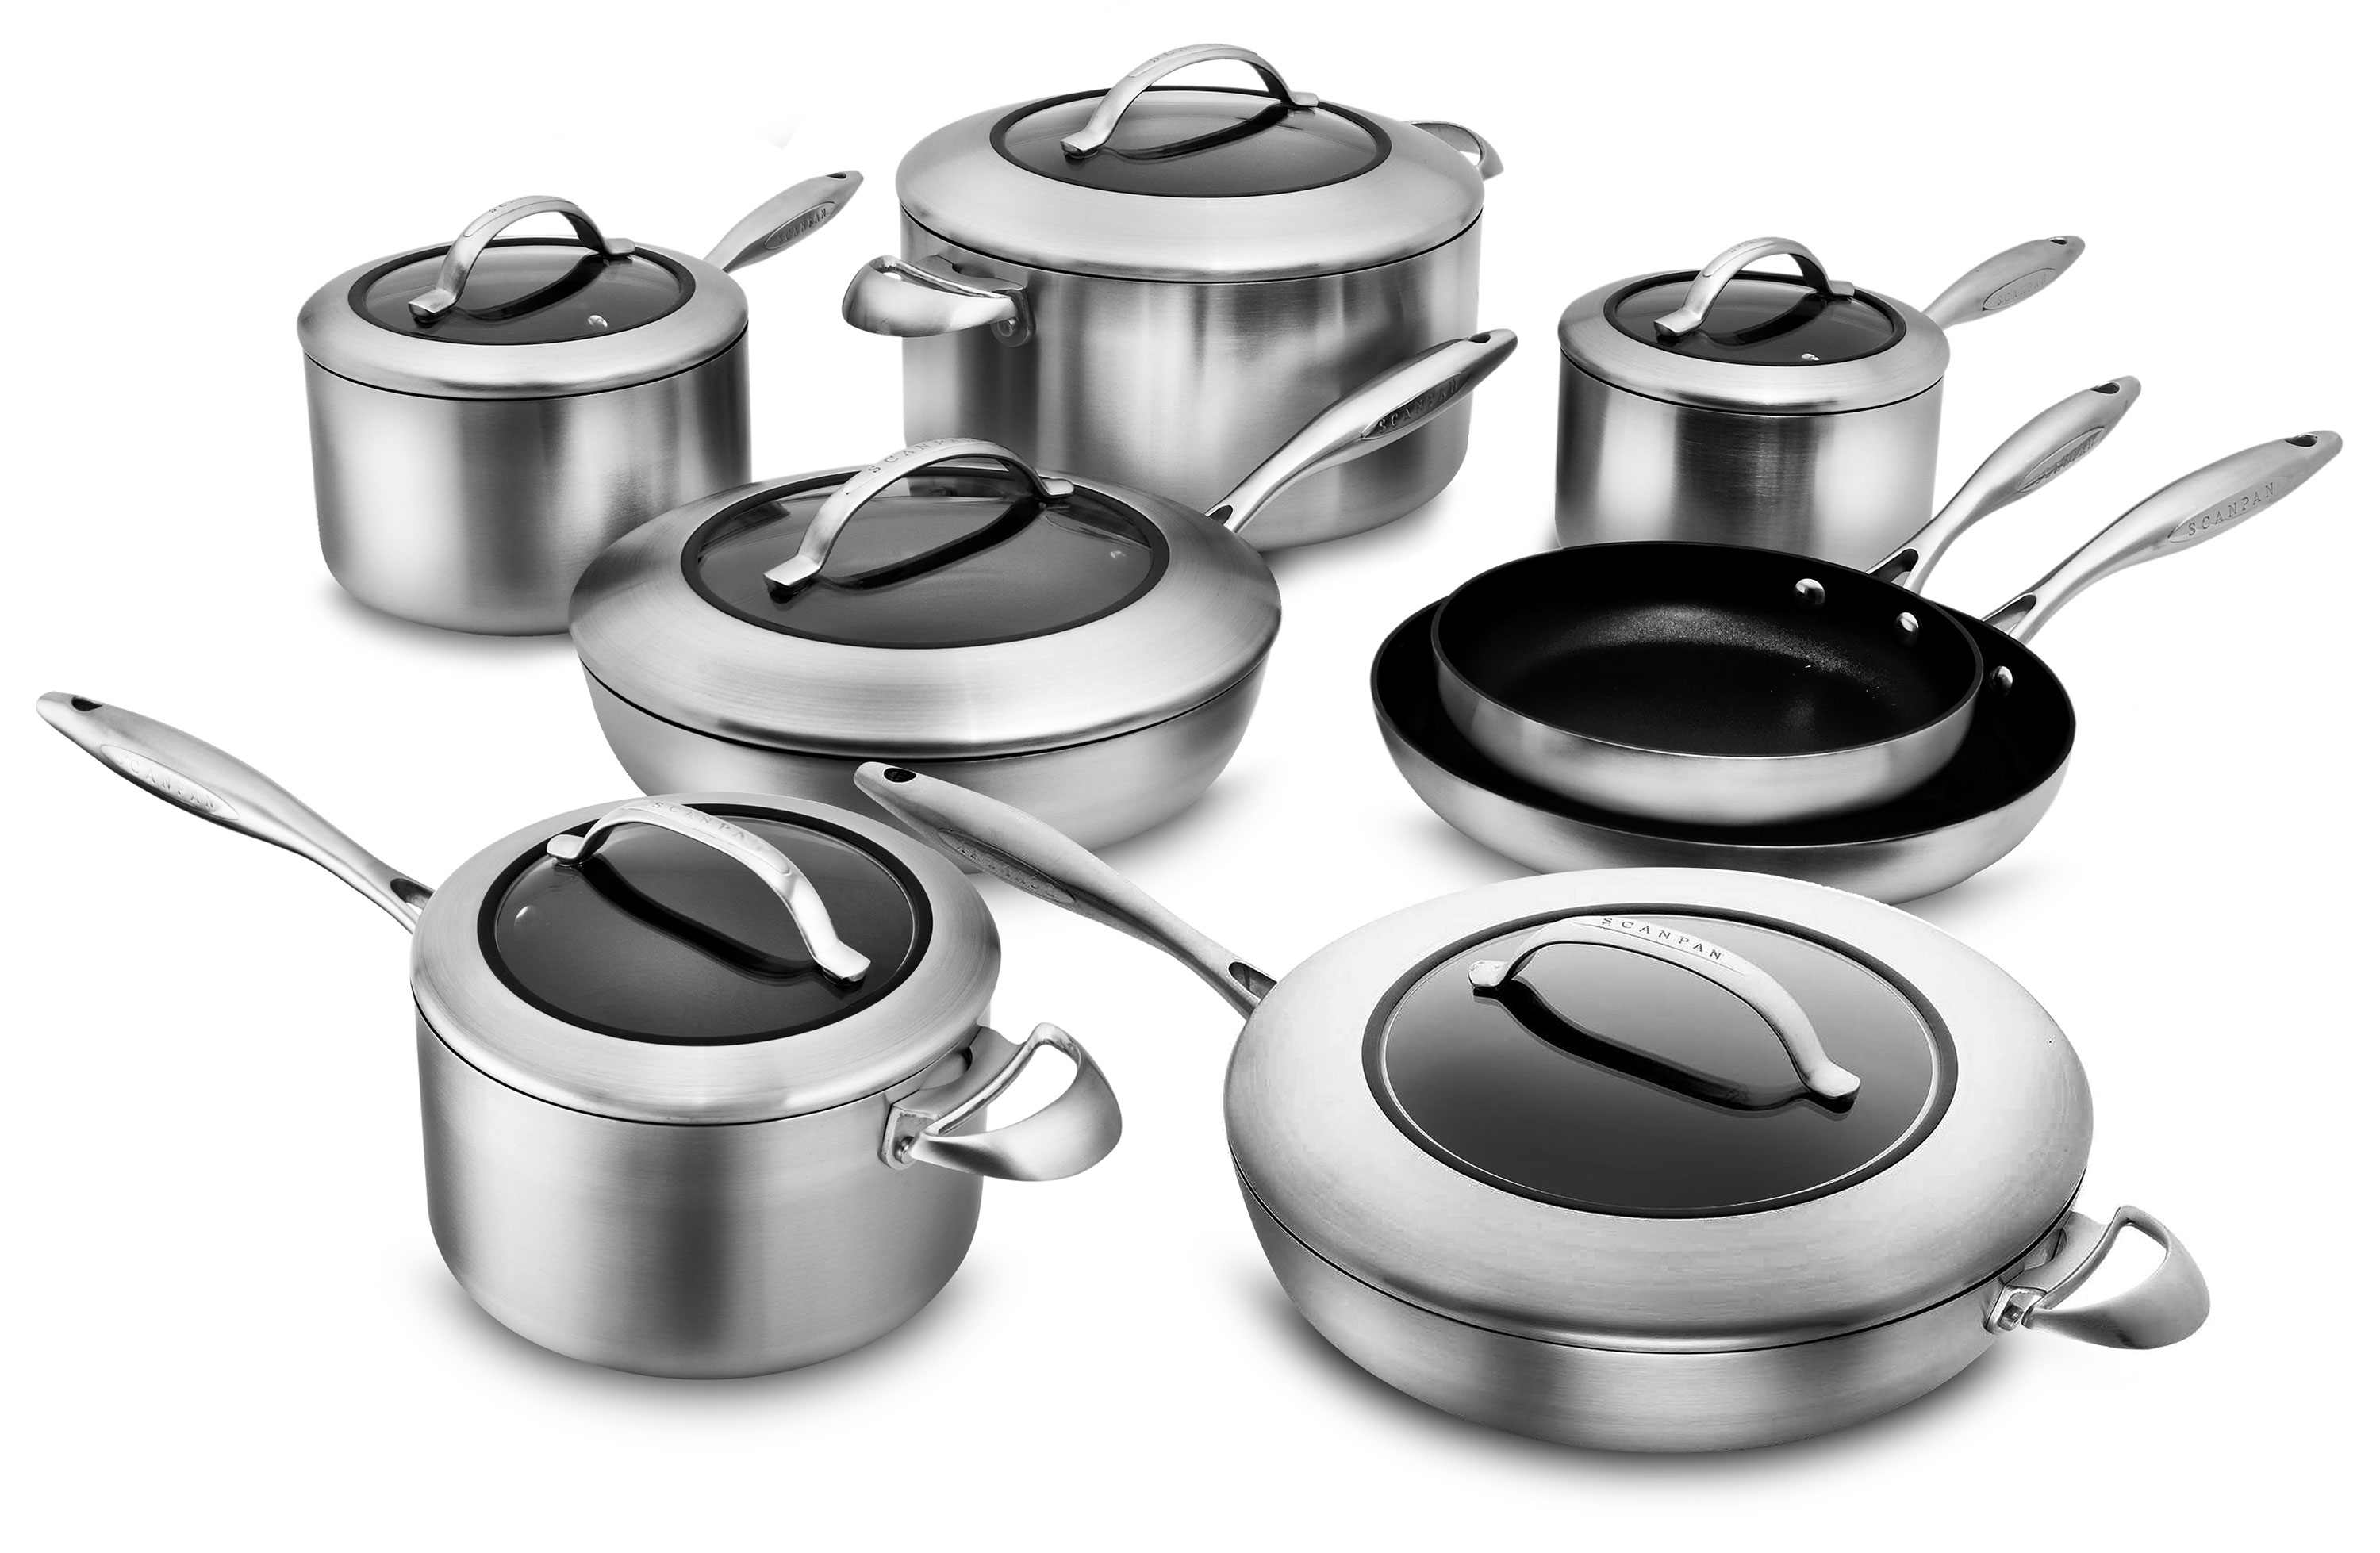 Scanpan Ctx Cookware Set New Stratanium Nonstick 14